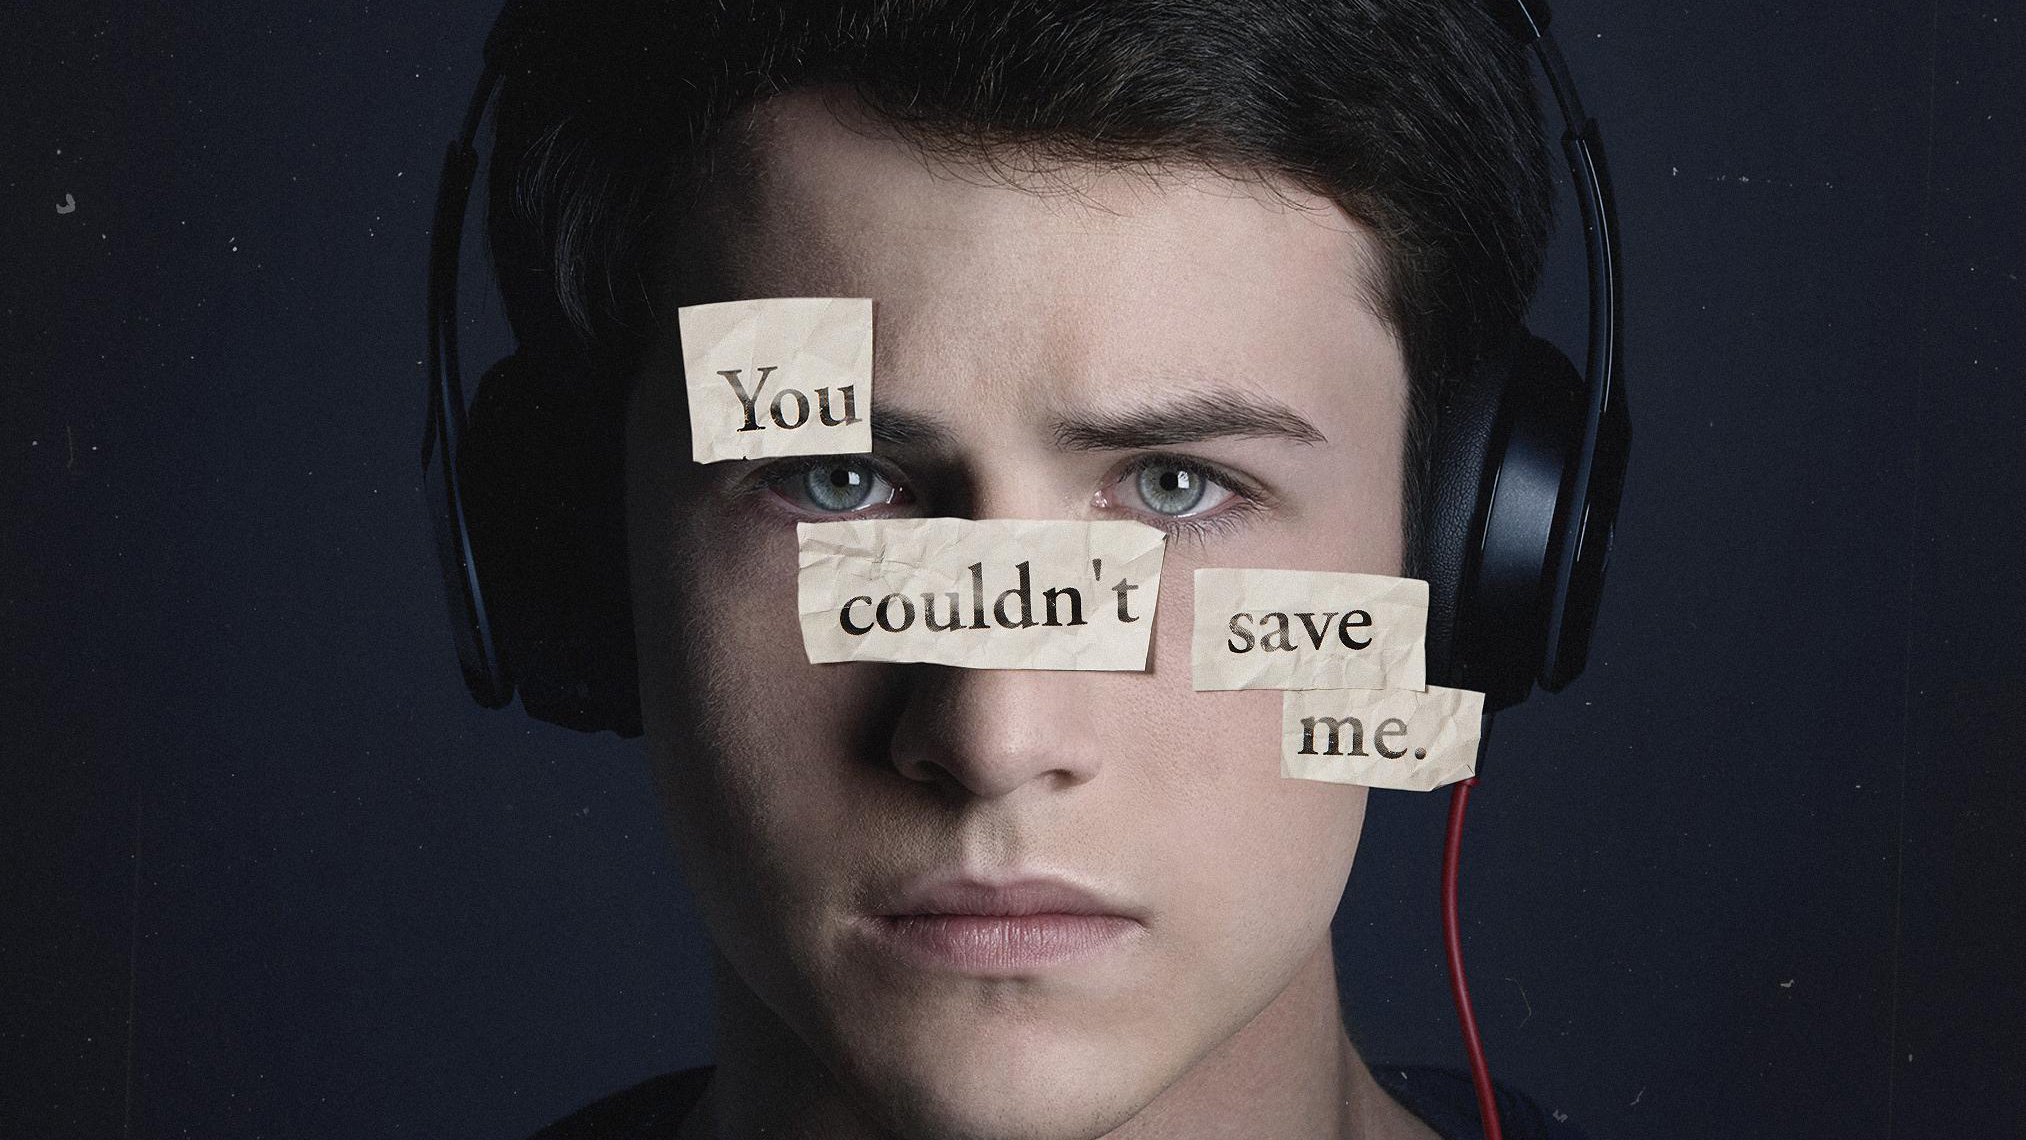 Clay 13 reasons why poster hd tv shows 4k wallpapers - 13 reasons why wallpaper hd ...